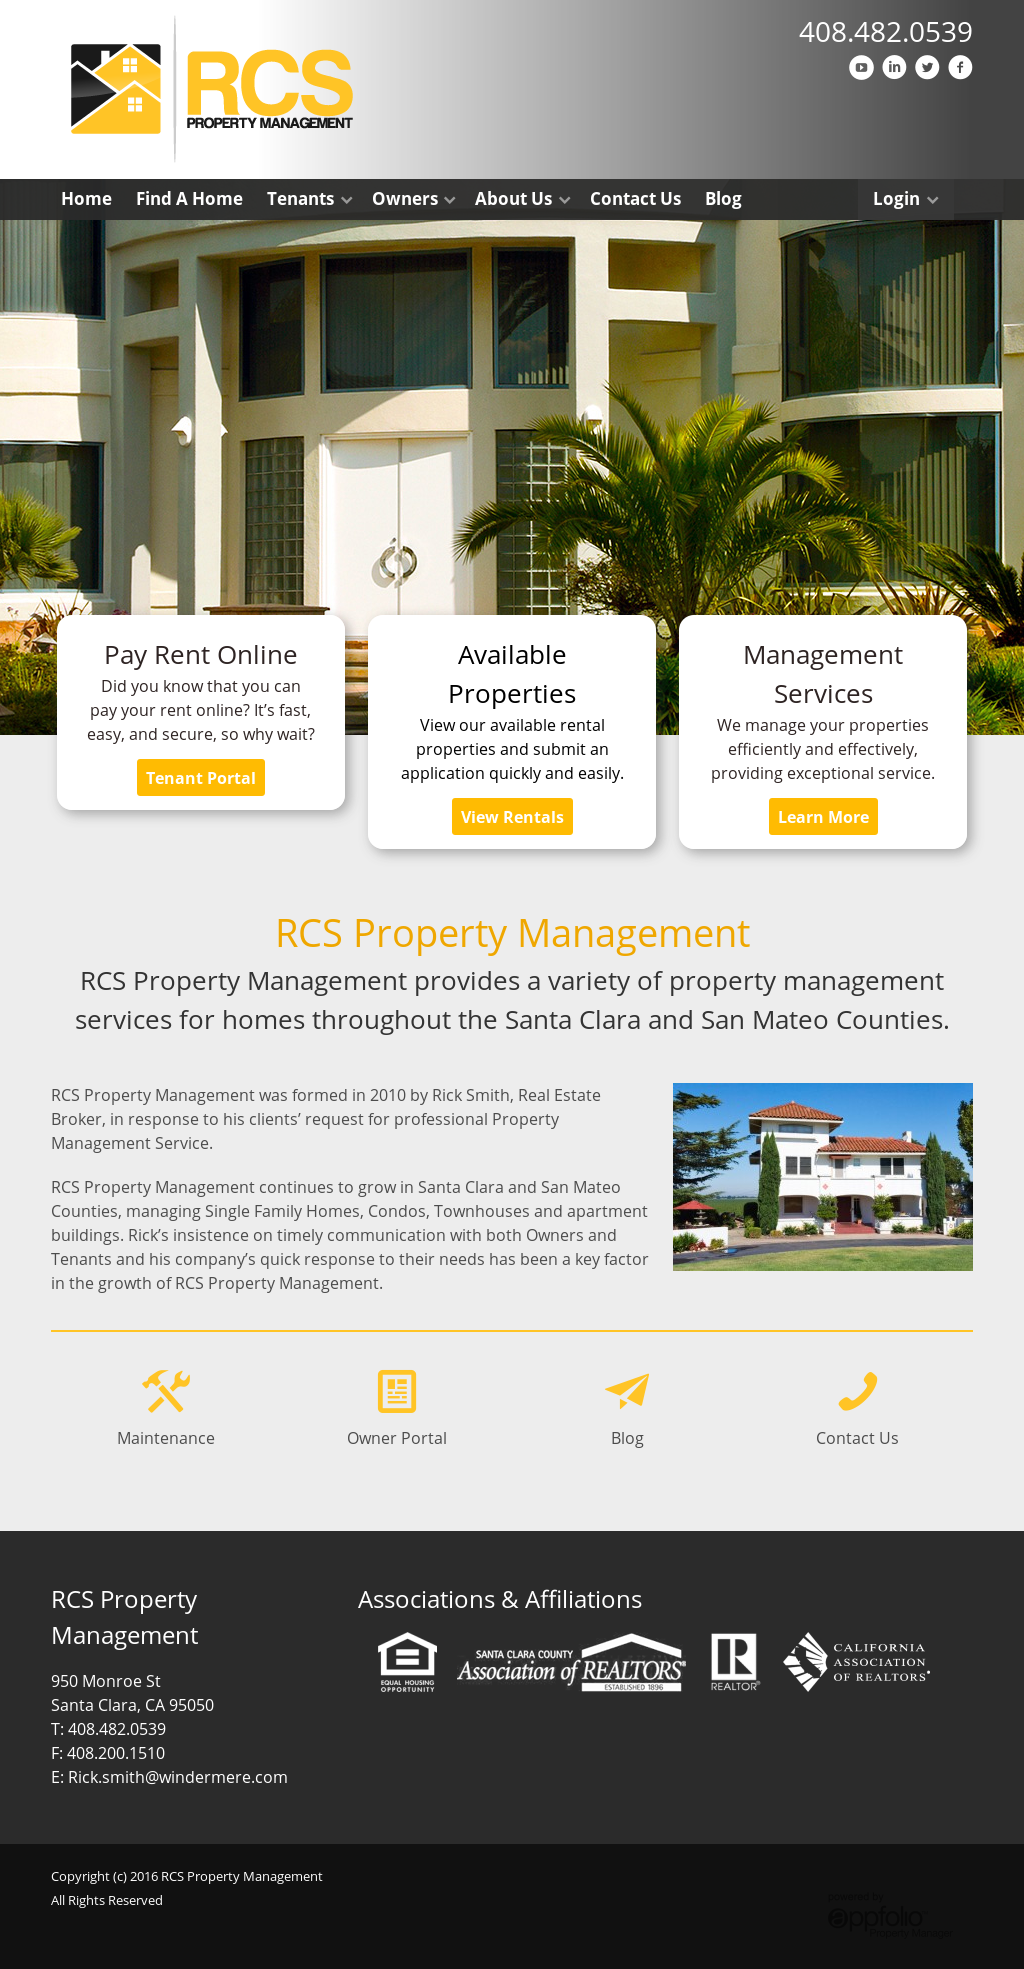 Rcs Property Management Competitors, Revenue and Employees - Owler